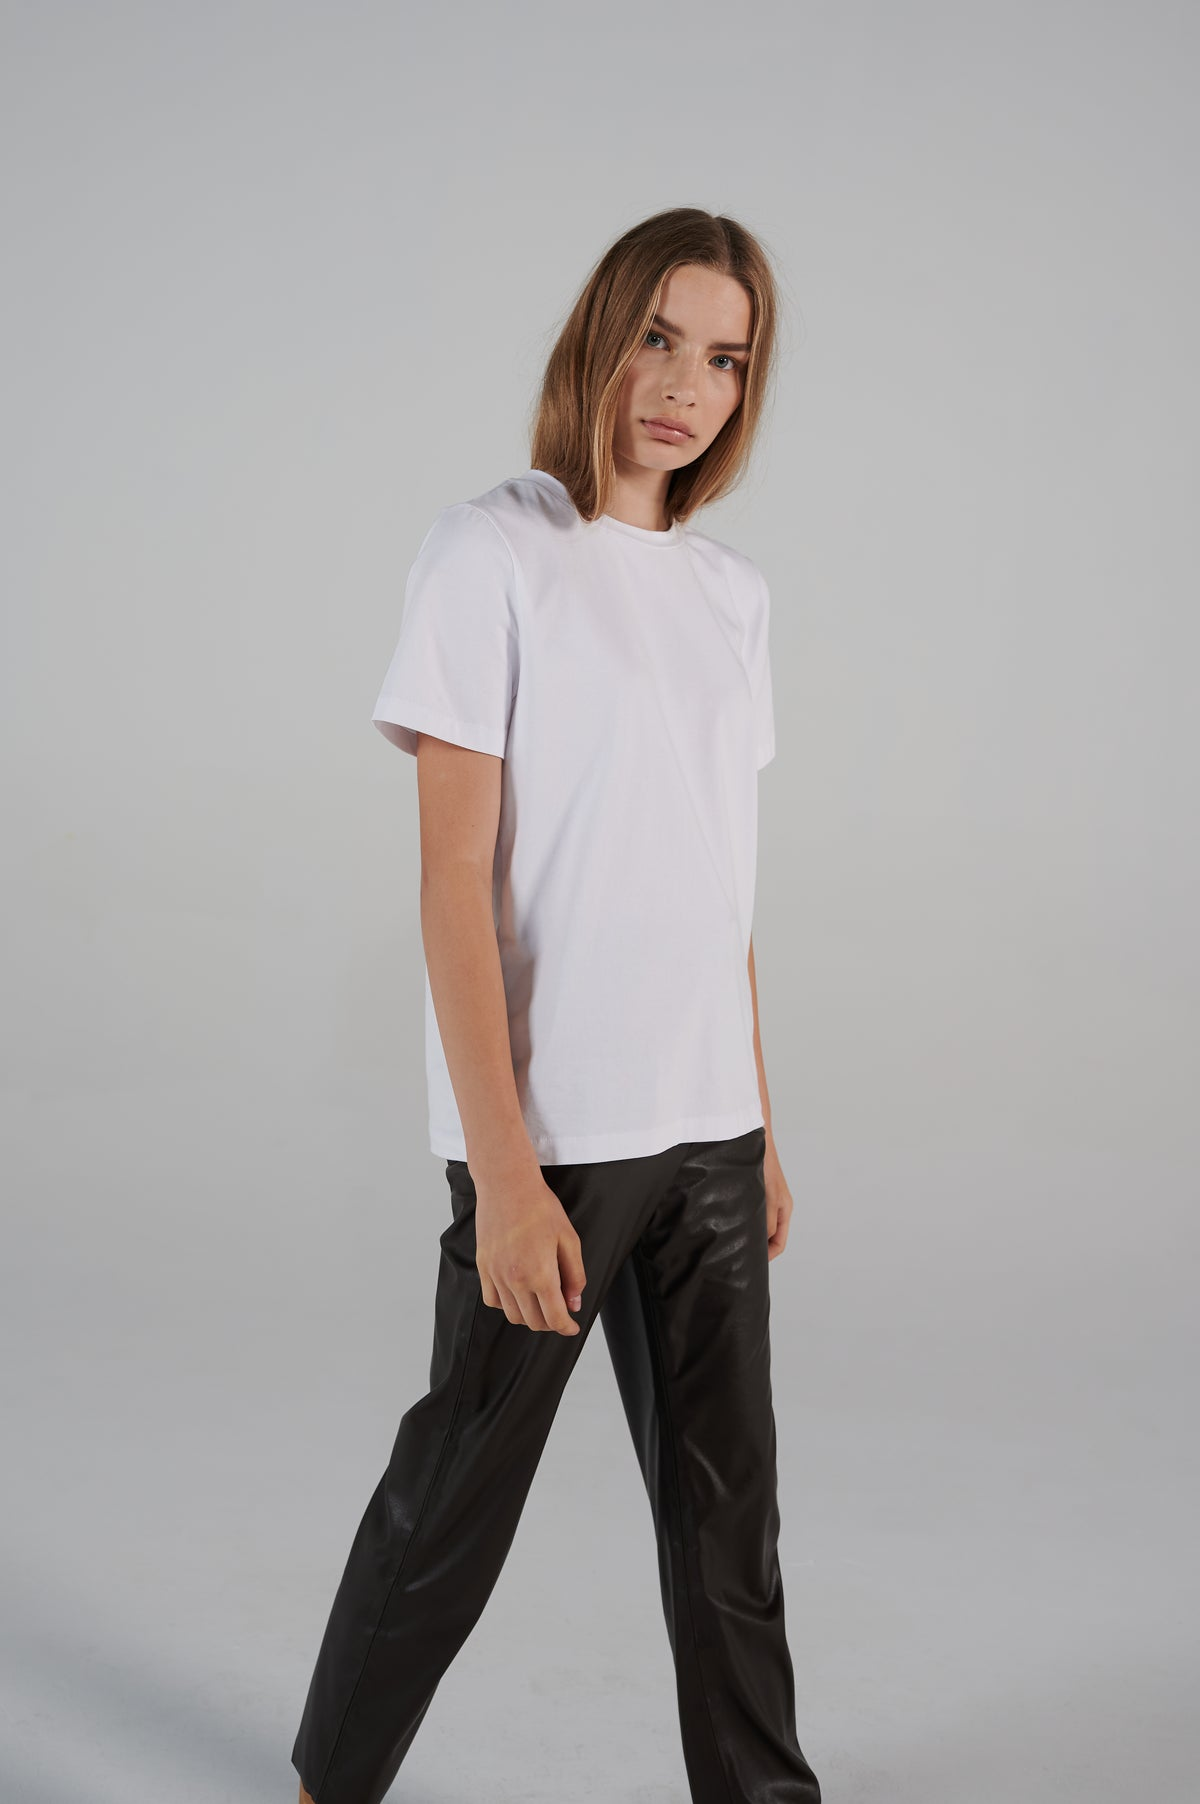 lifetime-line-le-slap-logo-white-tshirt-bold-contrasting-lookbook.jpg